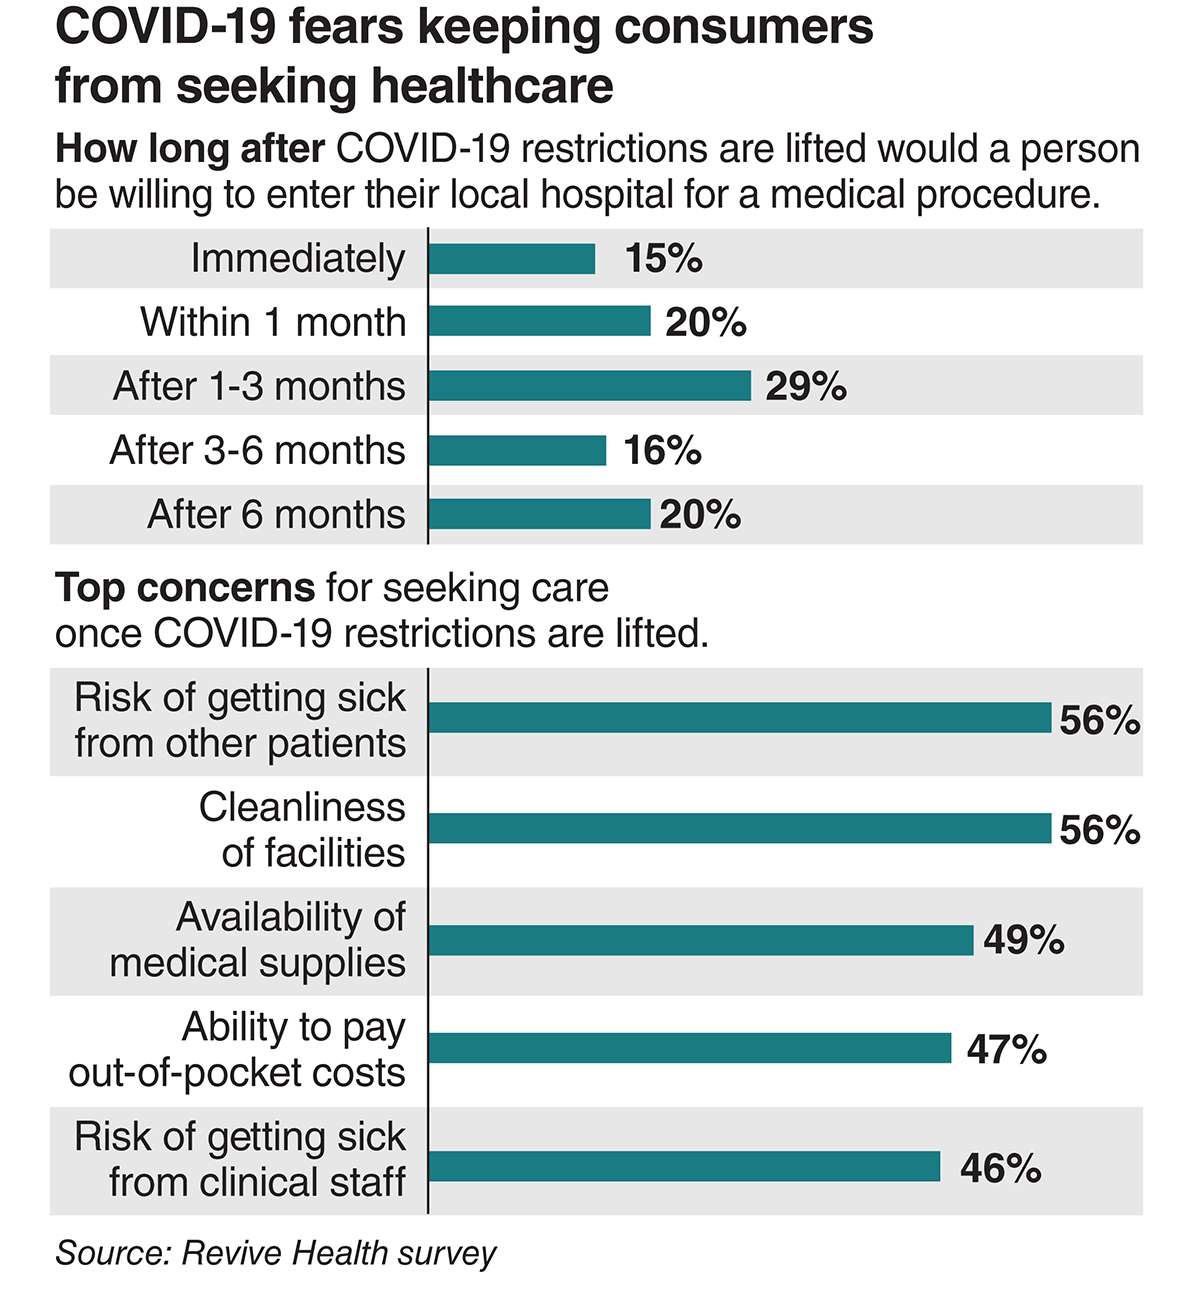 COVID-19 fears keep consumers from seeking healthcare